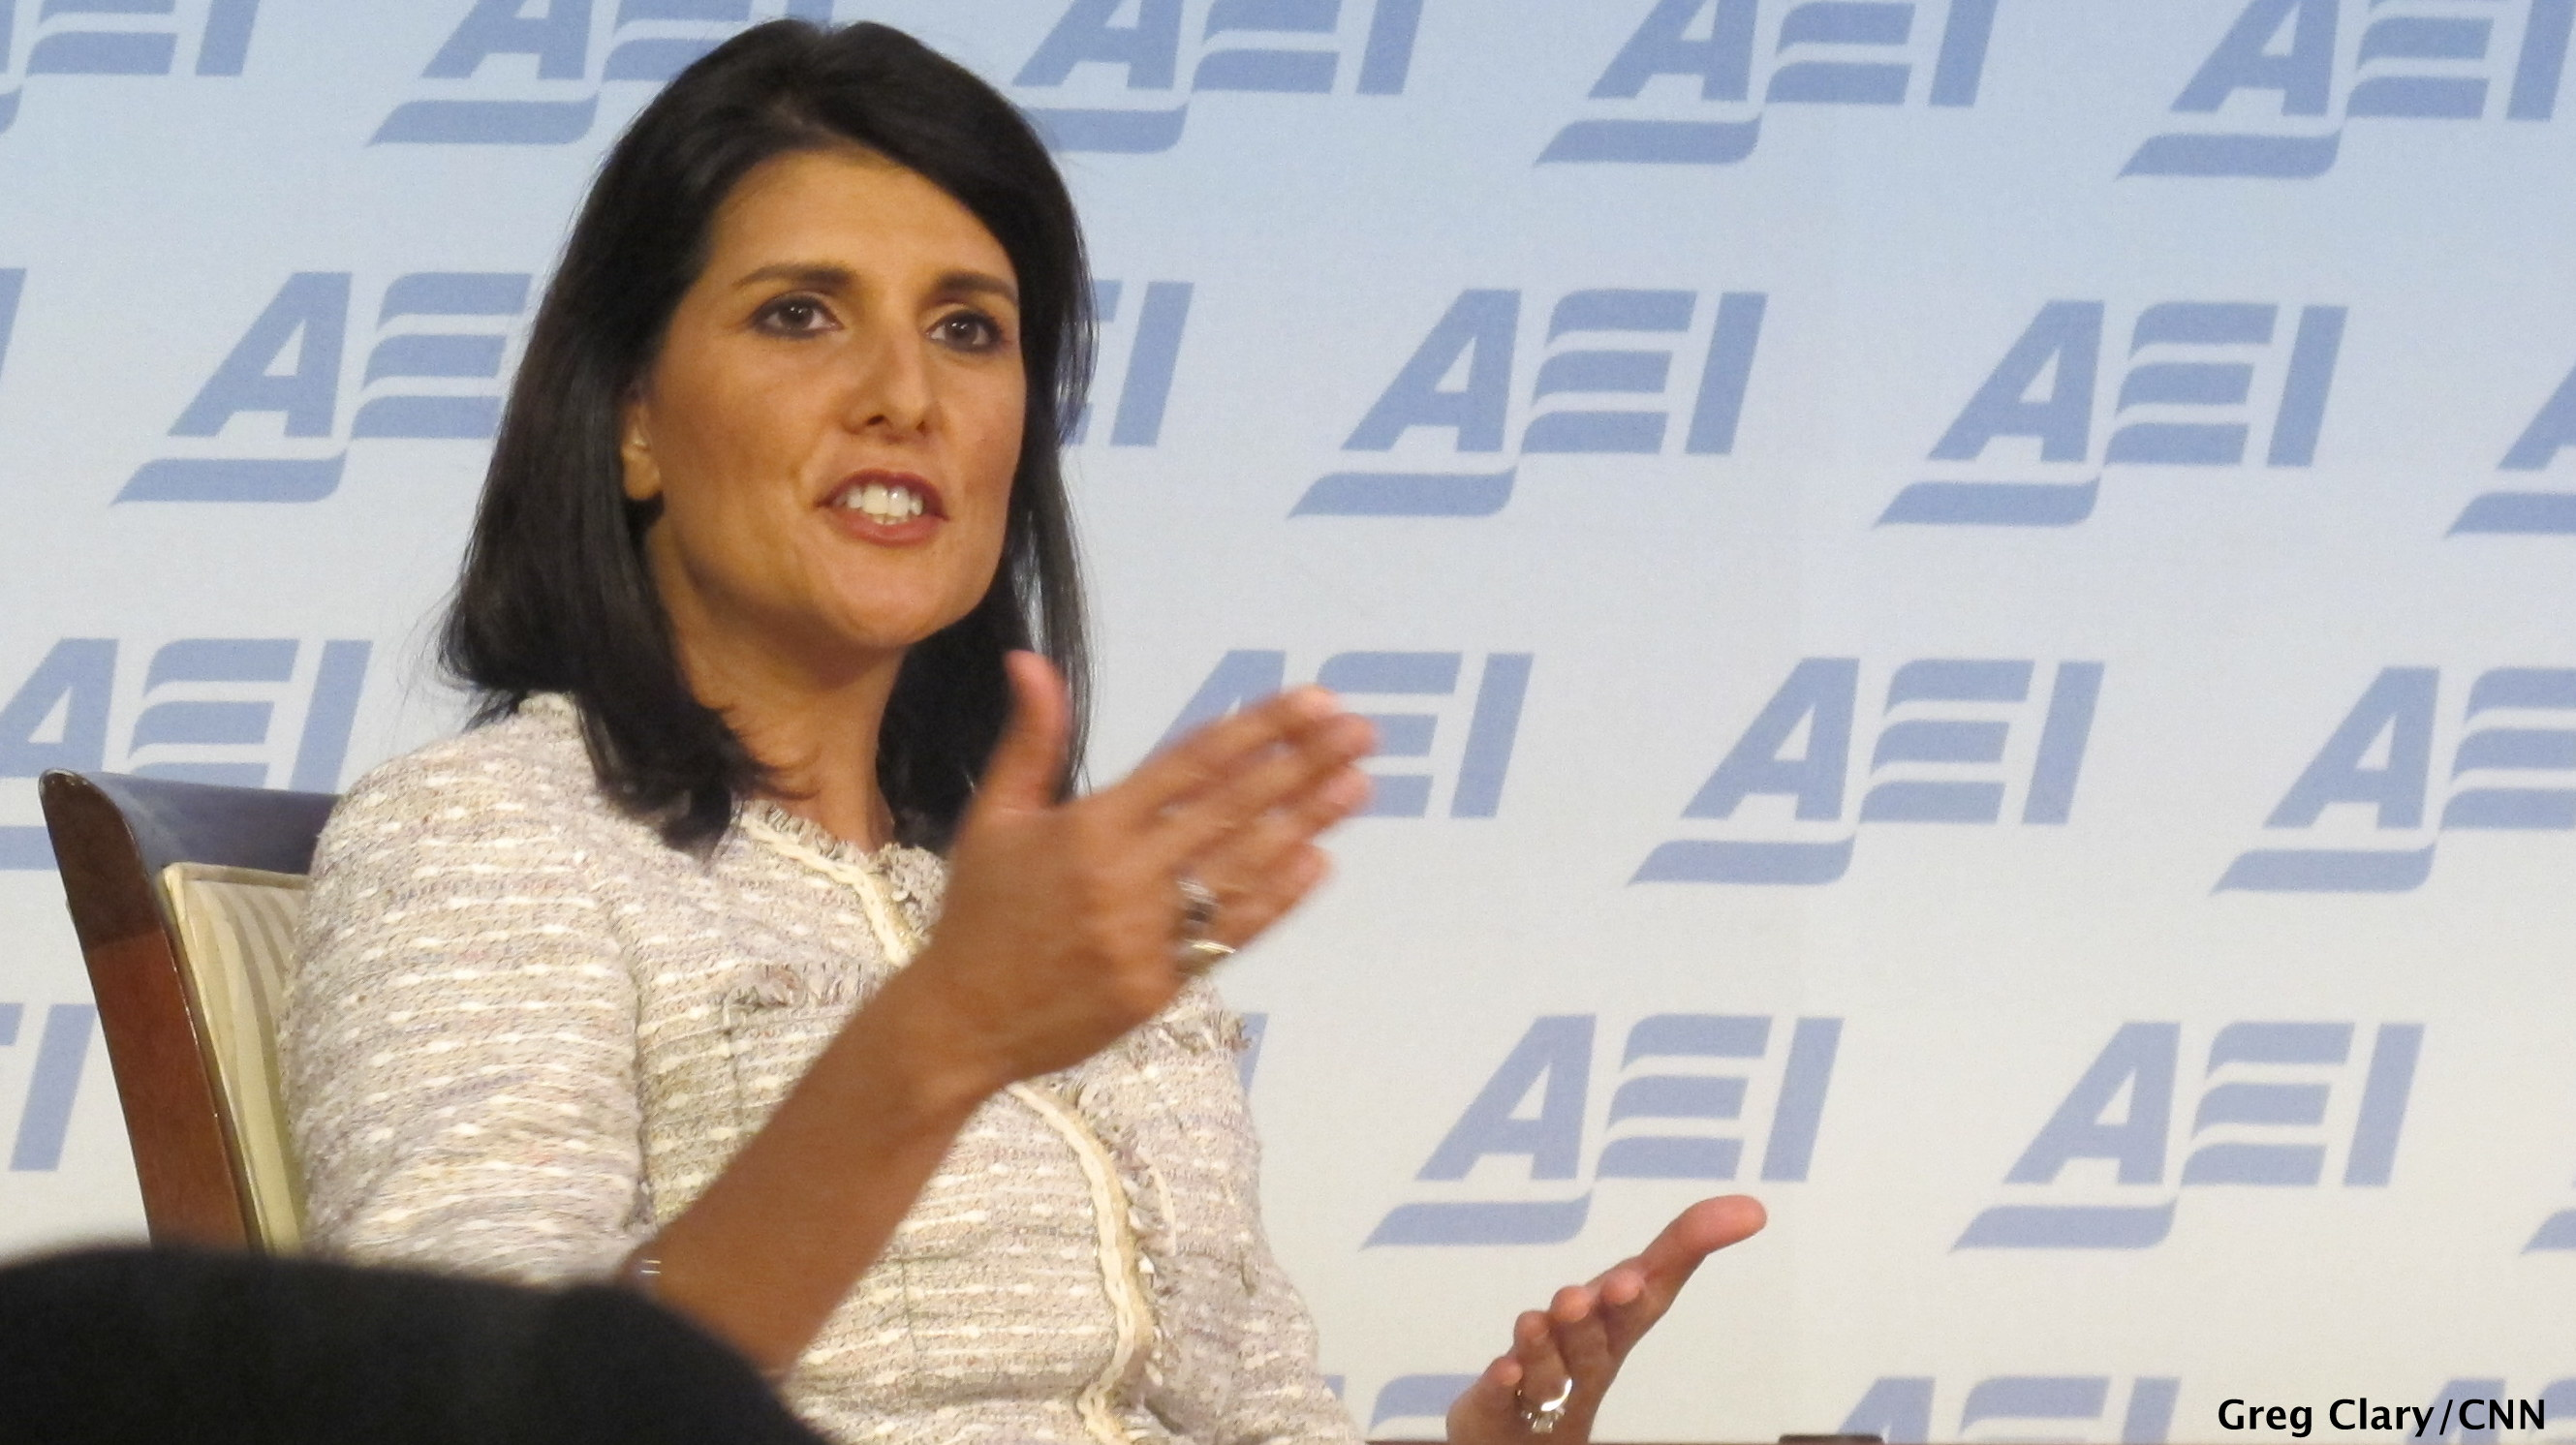 Haley plans no 'placeholder' for DeMint's Senate seat